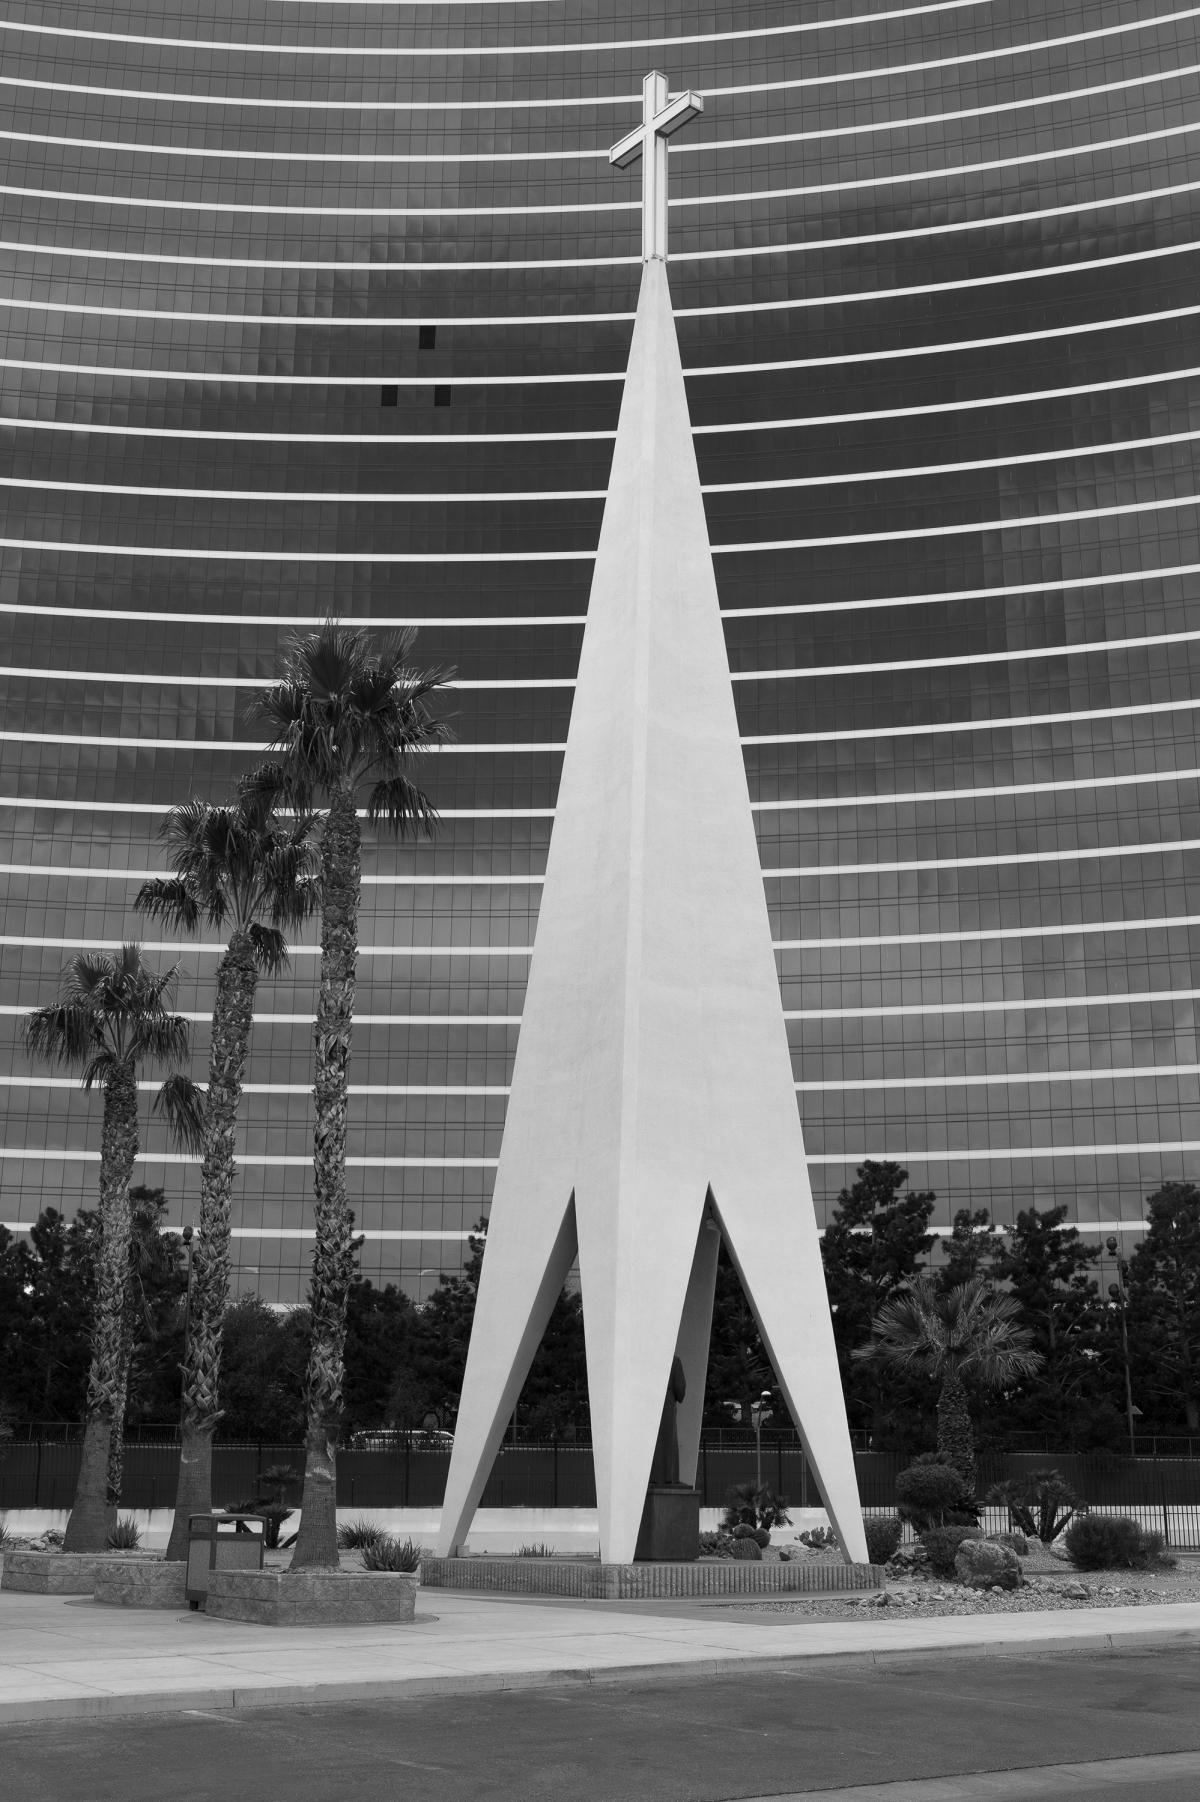 This four-sided spire stands beside the Guardian Angel Cathedral on the Las Vegas Strip. Designed by Williams in the early 1960s, both structures were built in 1963 to serve casino employees who lived and worked in the area.